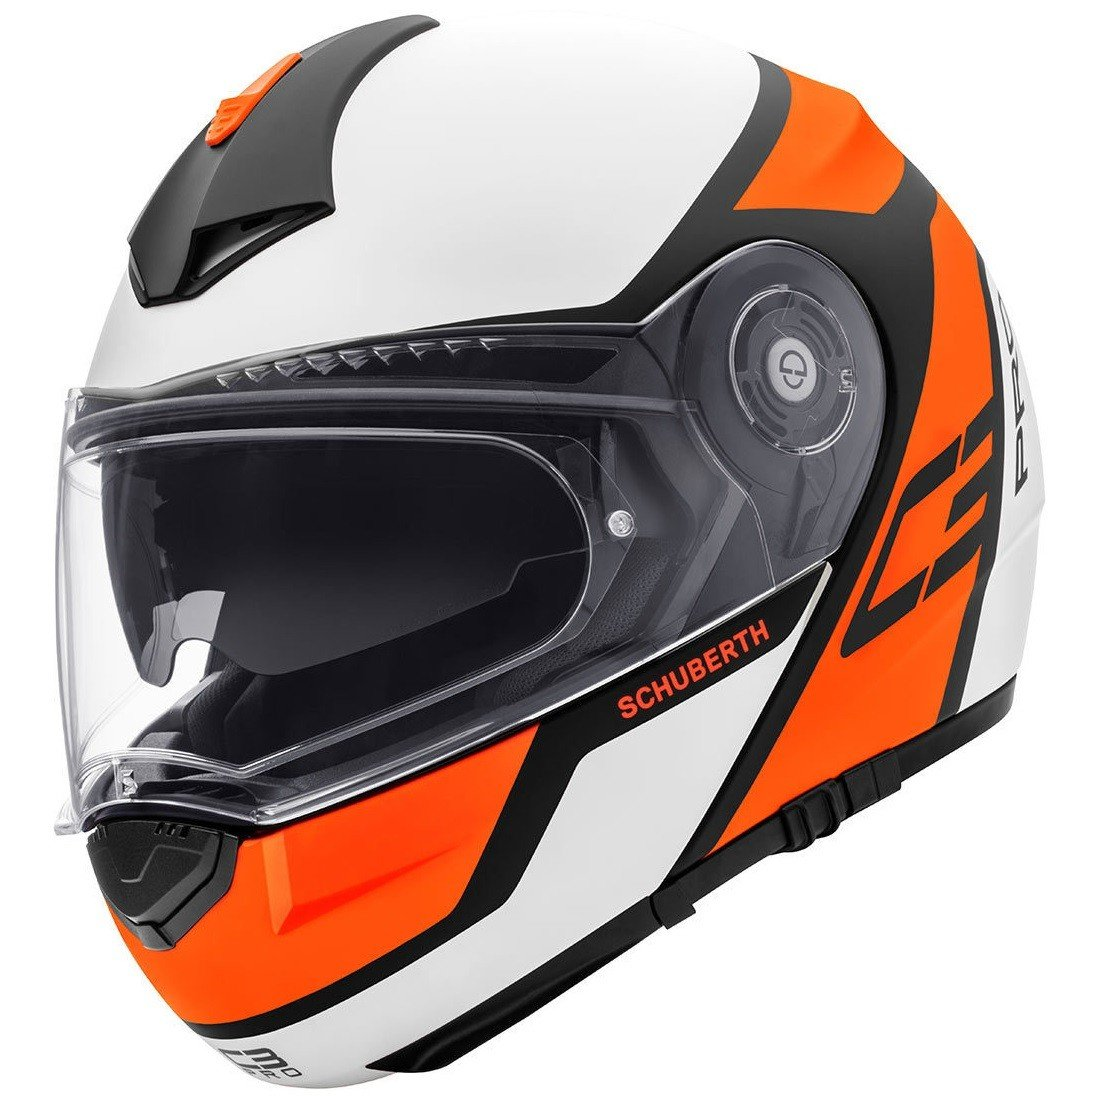 Schuberth C3 Pro Echo orange L (58/59)